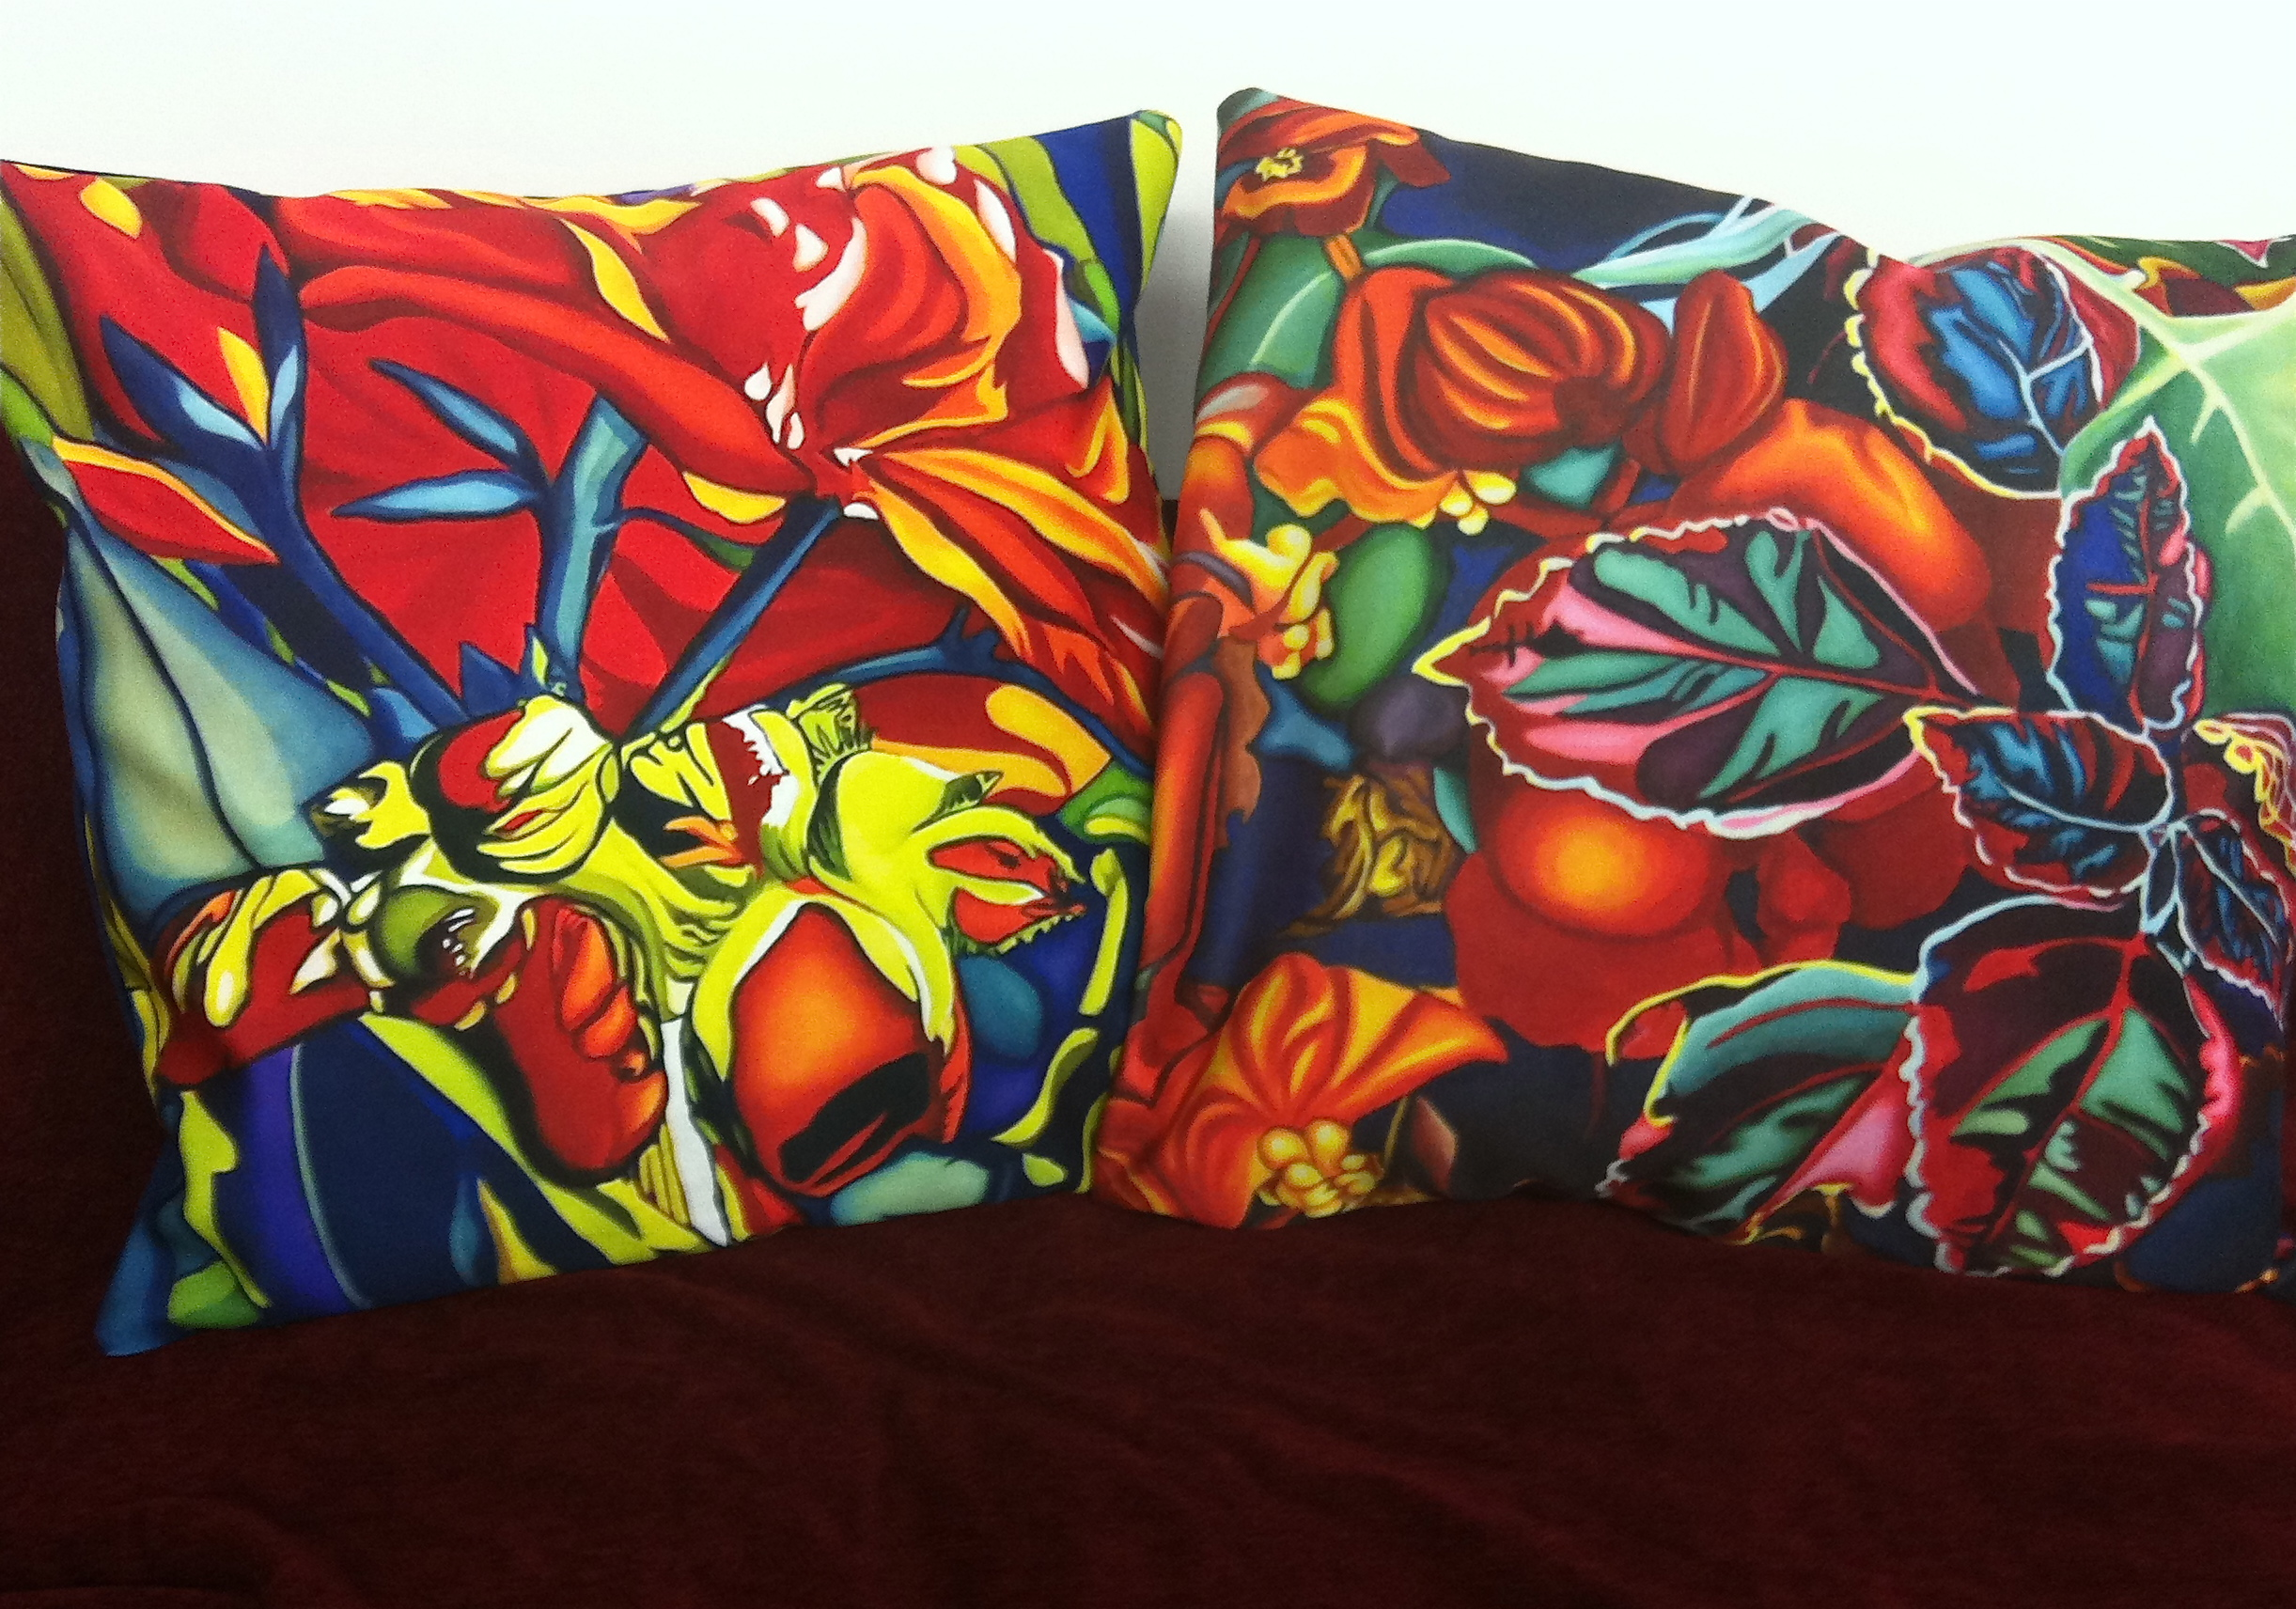 Emerging Red and Tapestry pillows